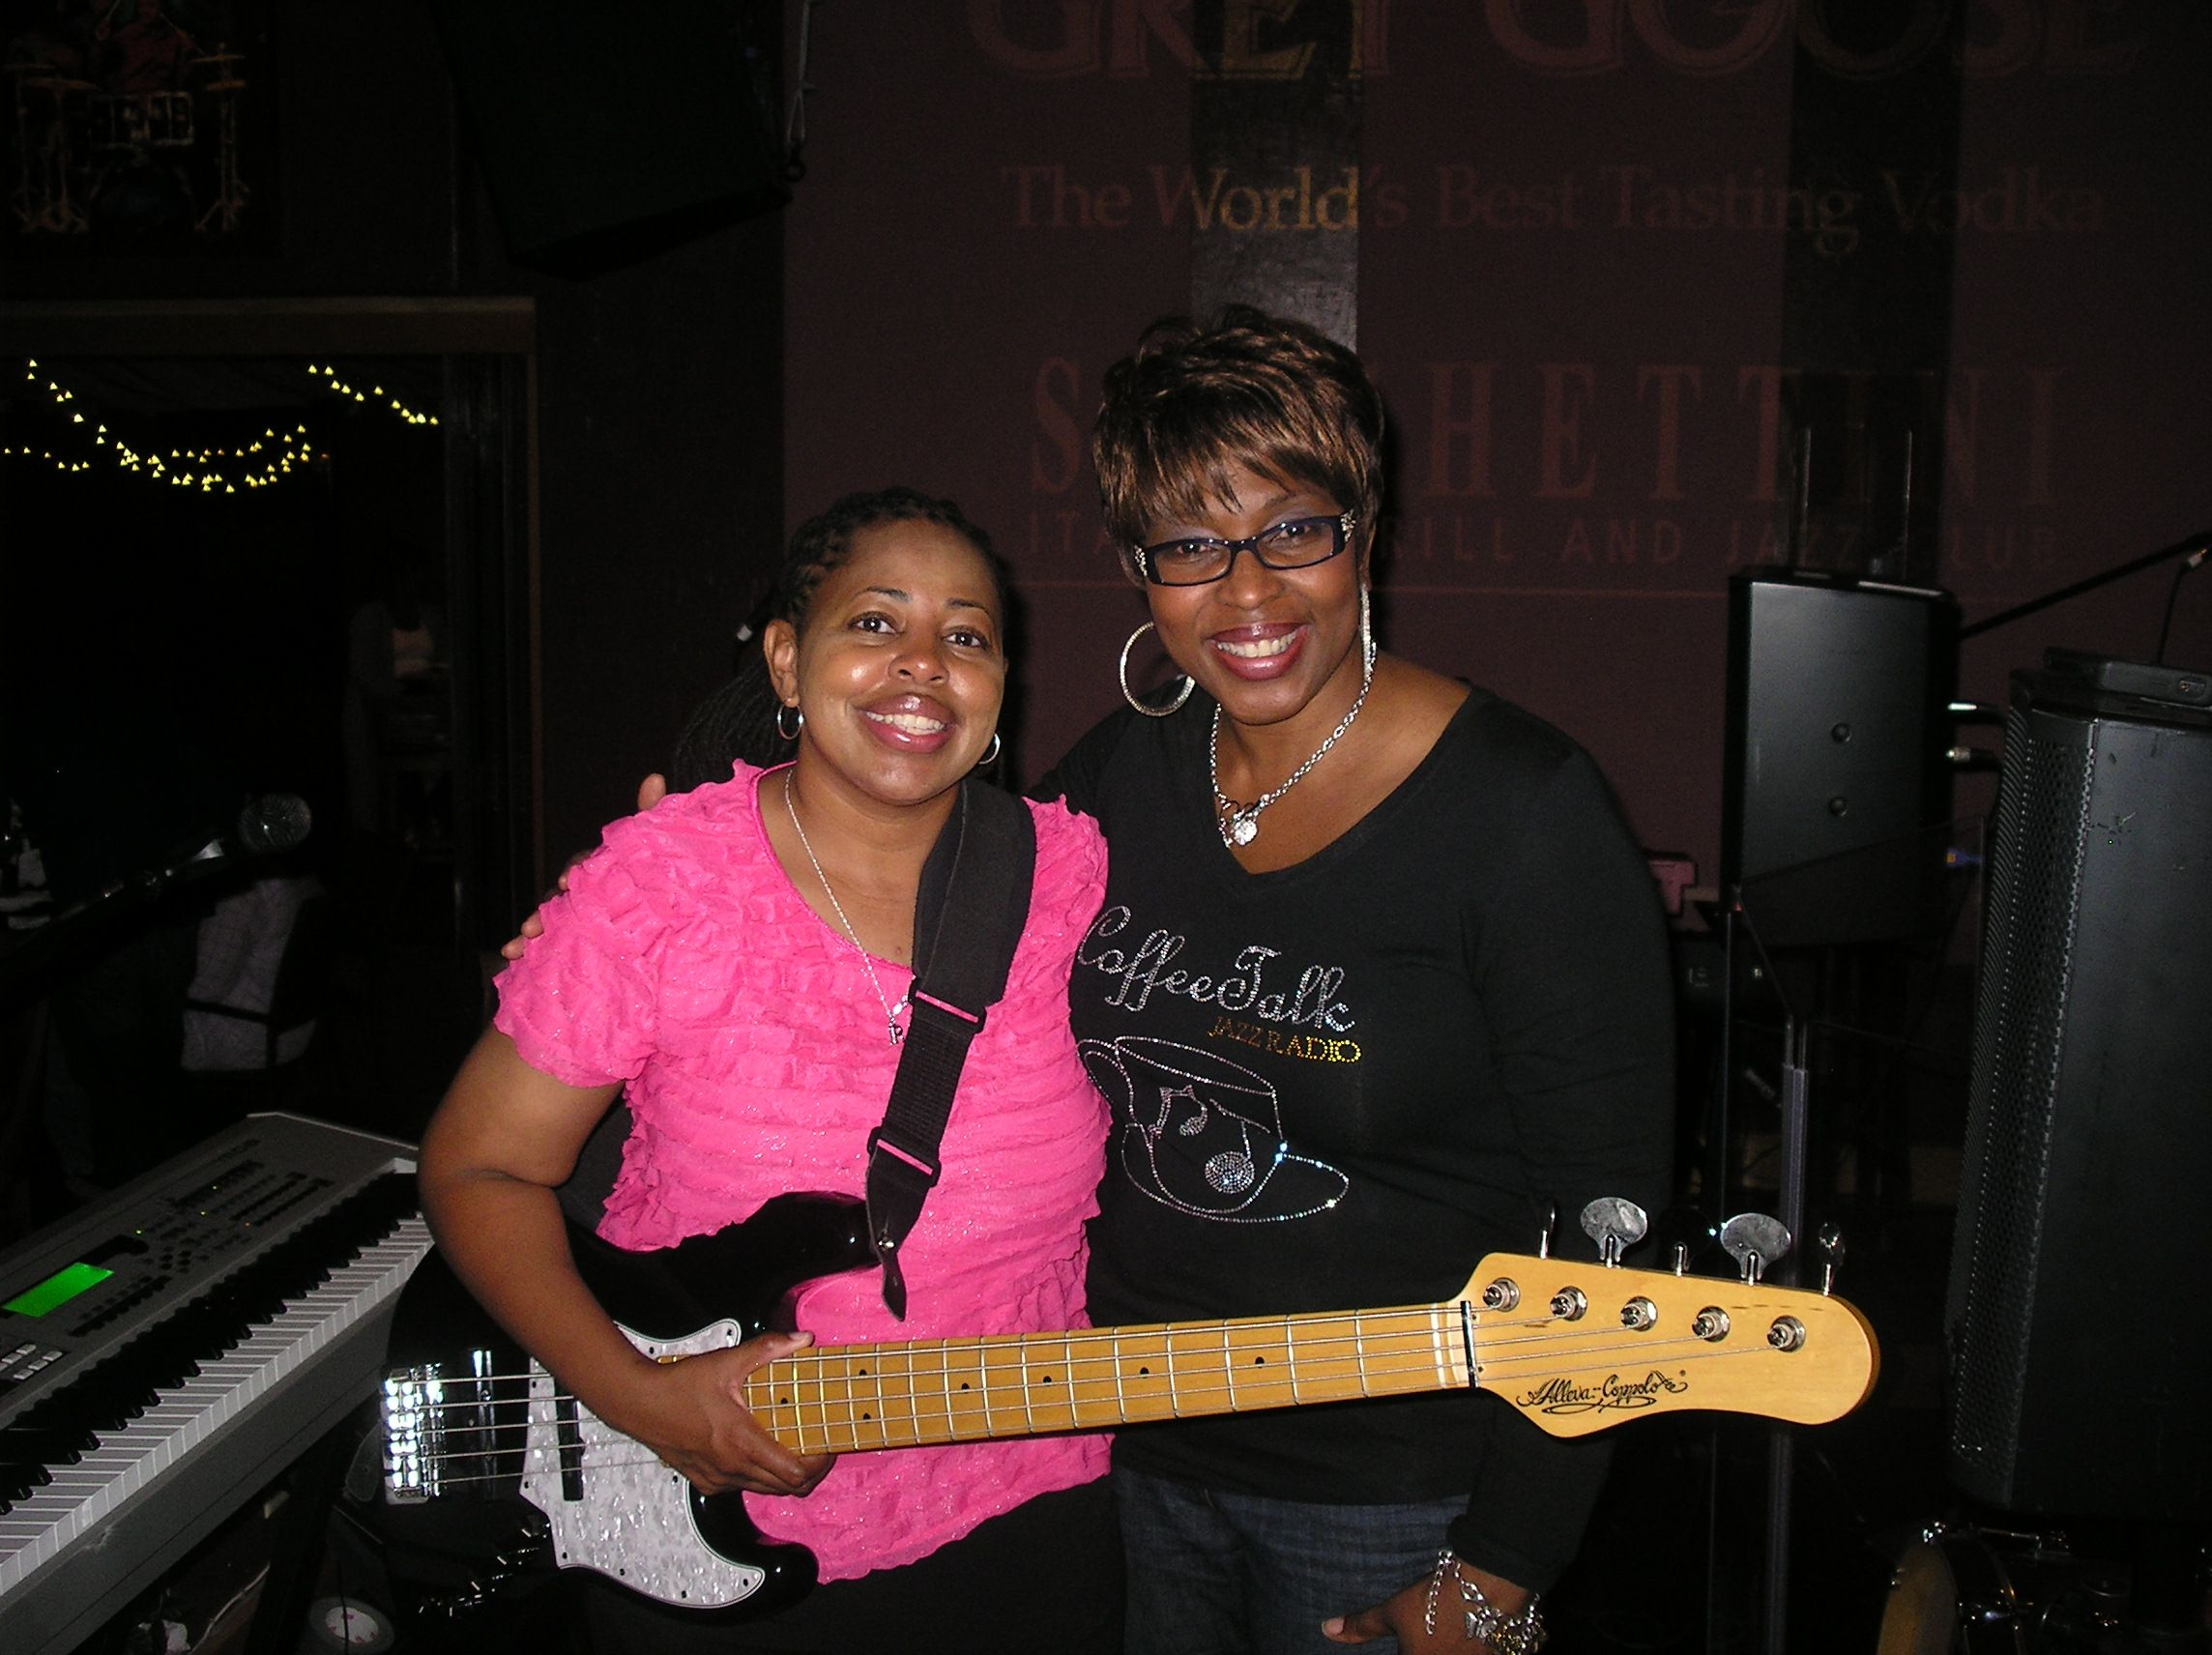 Robin Bramlett and the Coffeelady